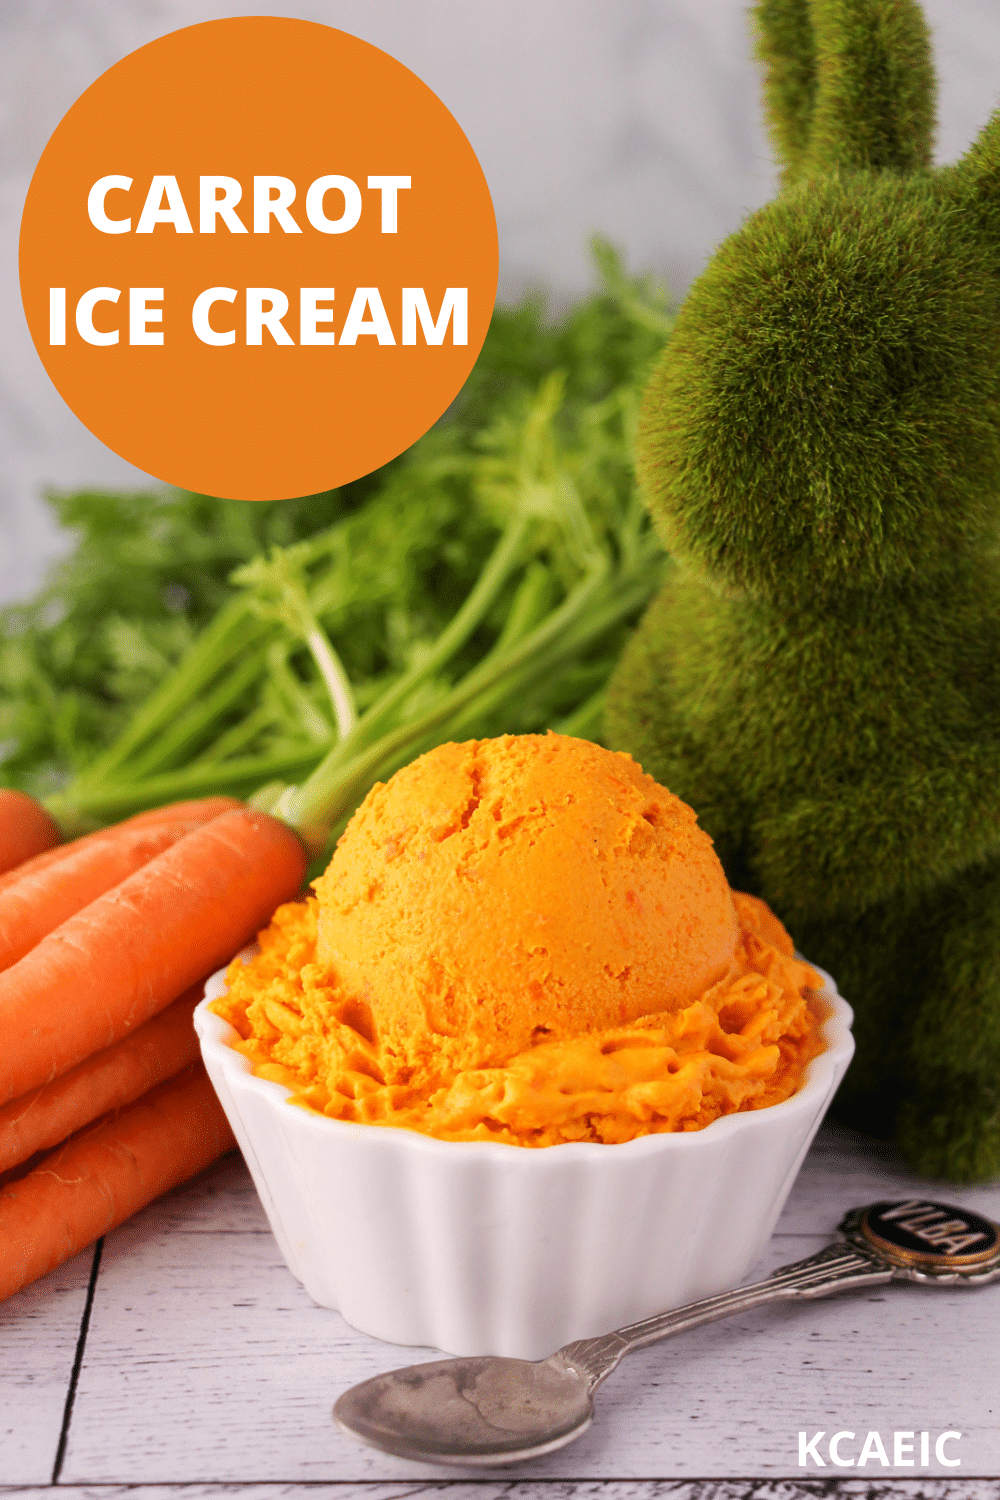 Scoop of carrot ice cream in a white bowl, with a vintage spoon and fresh Dutch carrots on the side, a green grass rabbit figure and text overlay, carrot ice cream, KCAEIC.